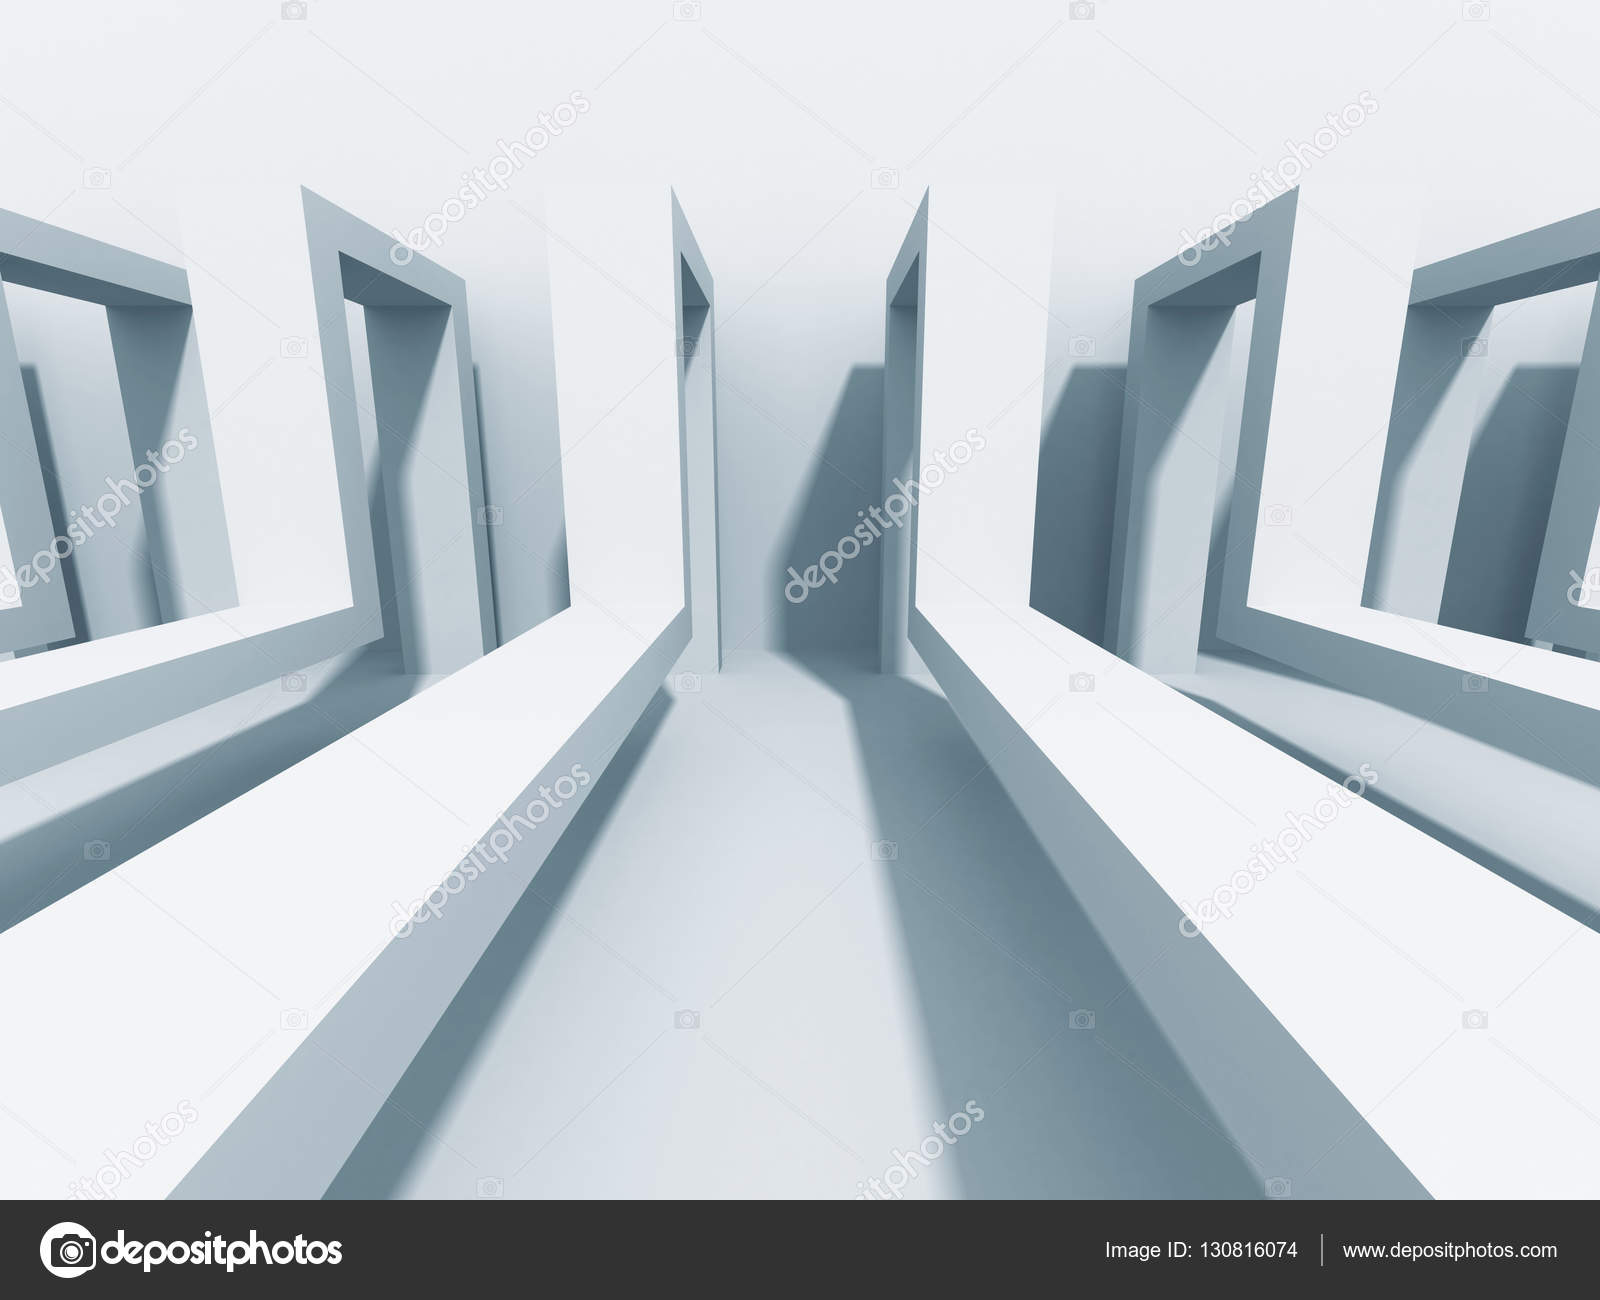 Abstrakt Architektur Hintergrund Moderne Konstruktion Wallpaper 3D Render Illustration Foto Von VERSUSstudio